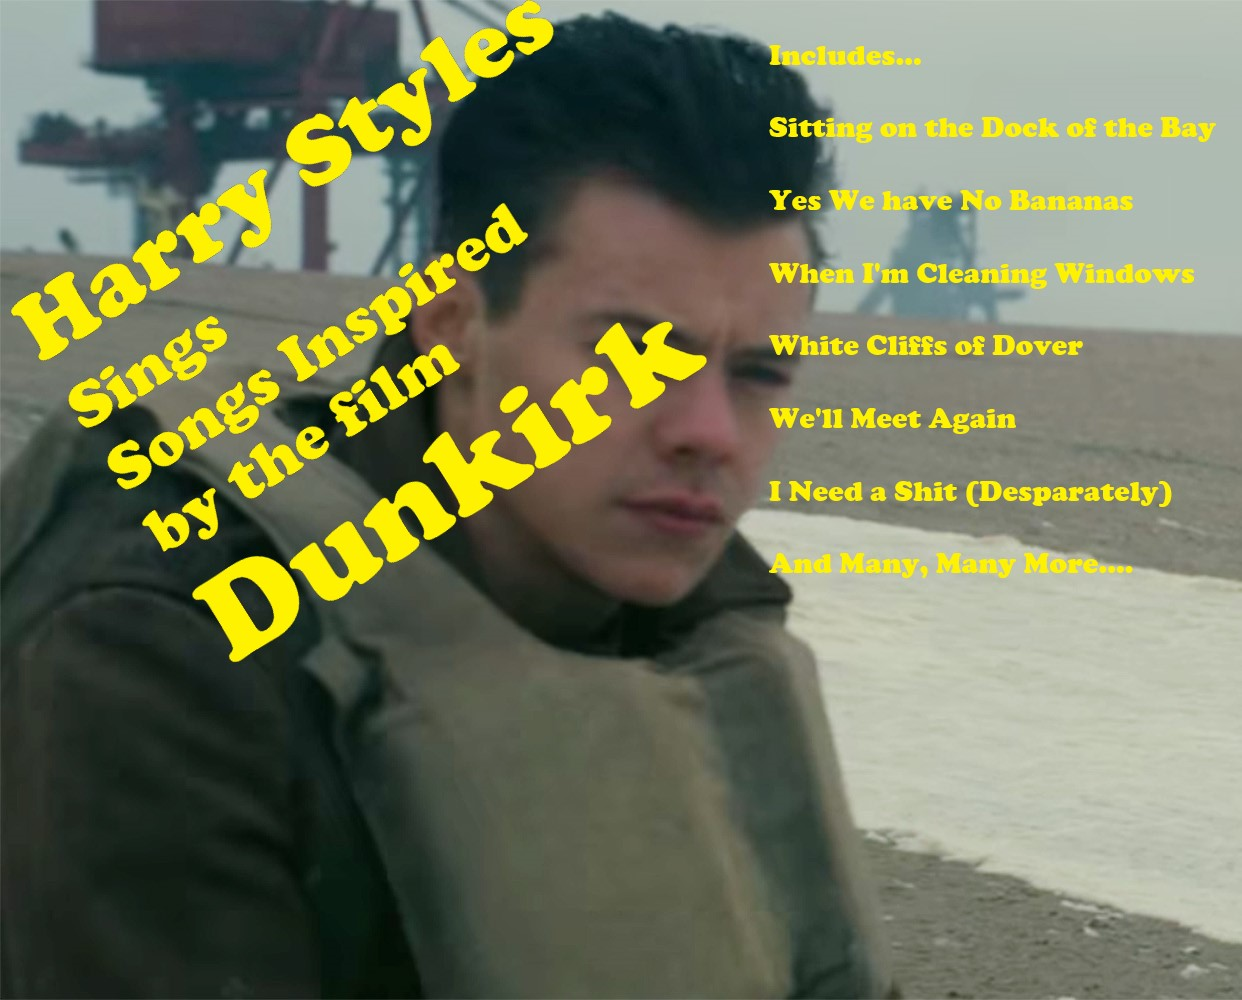 HARRY STYLES RELEASES DUNKIRK ALBUM